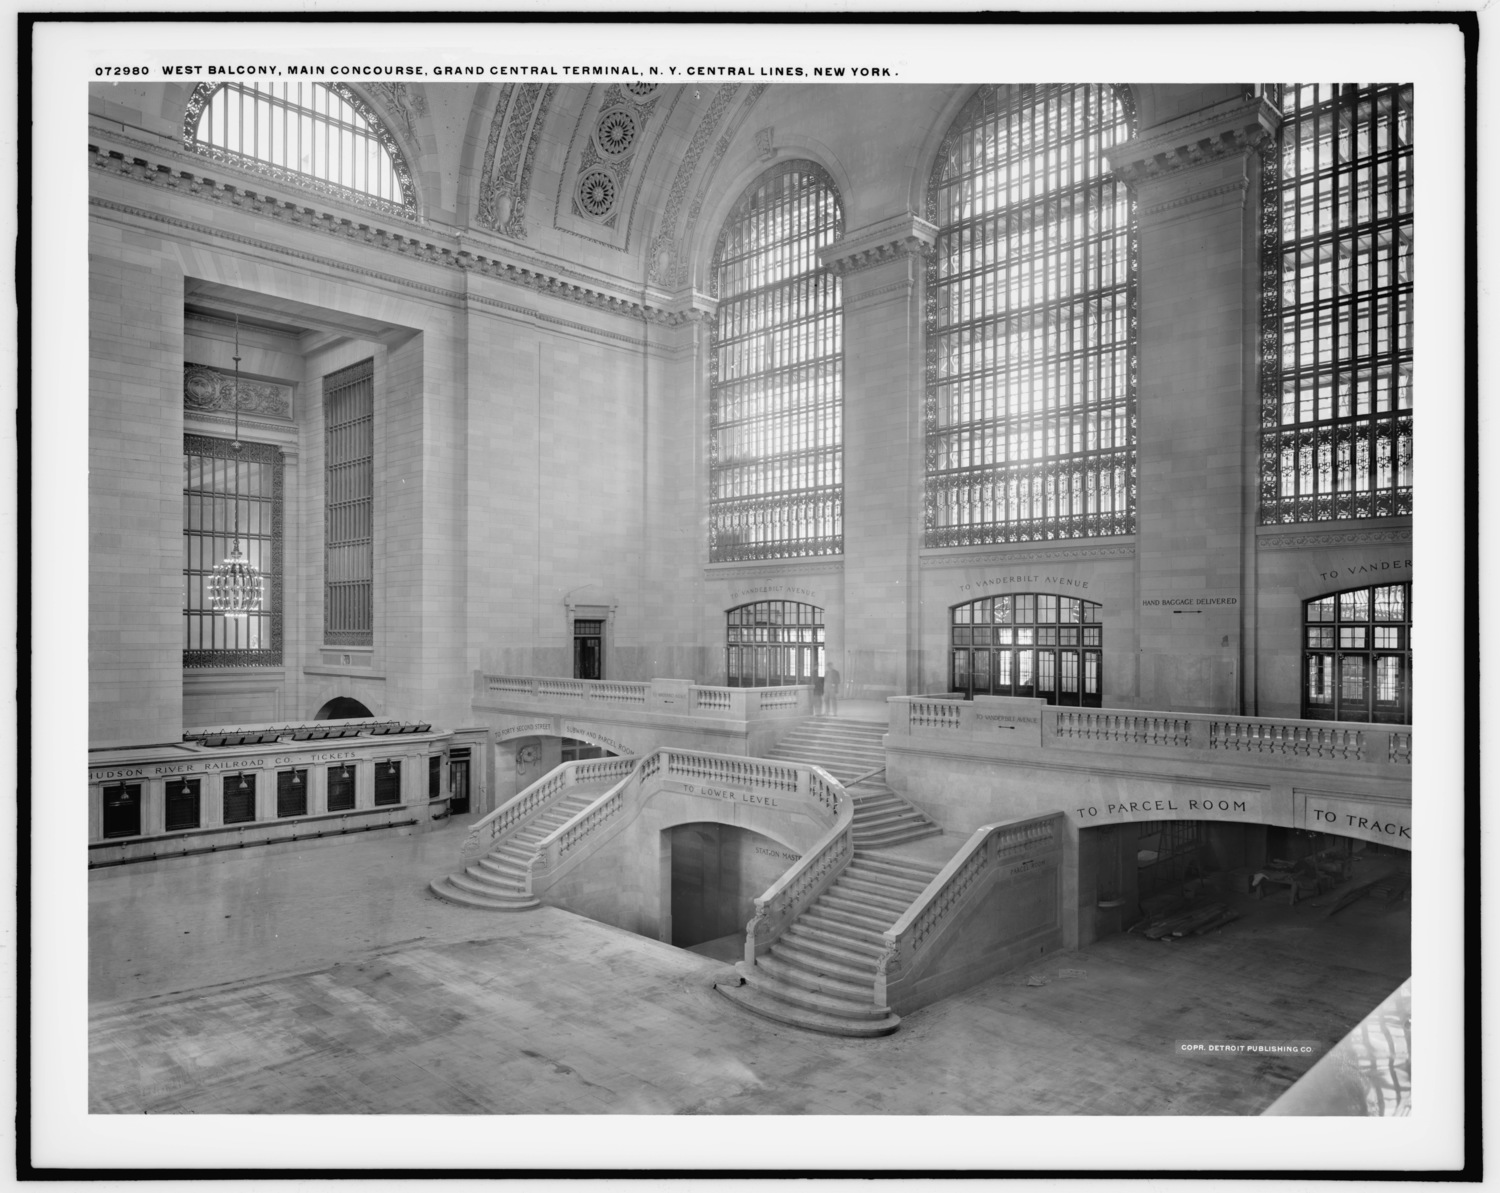 Vintage Photograph of the West Balcony in Grand Central Terminal's Main Concourse Circa 1915